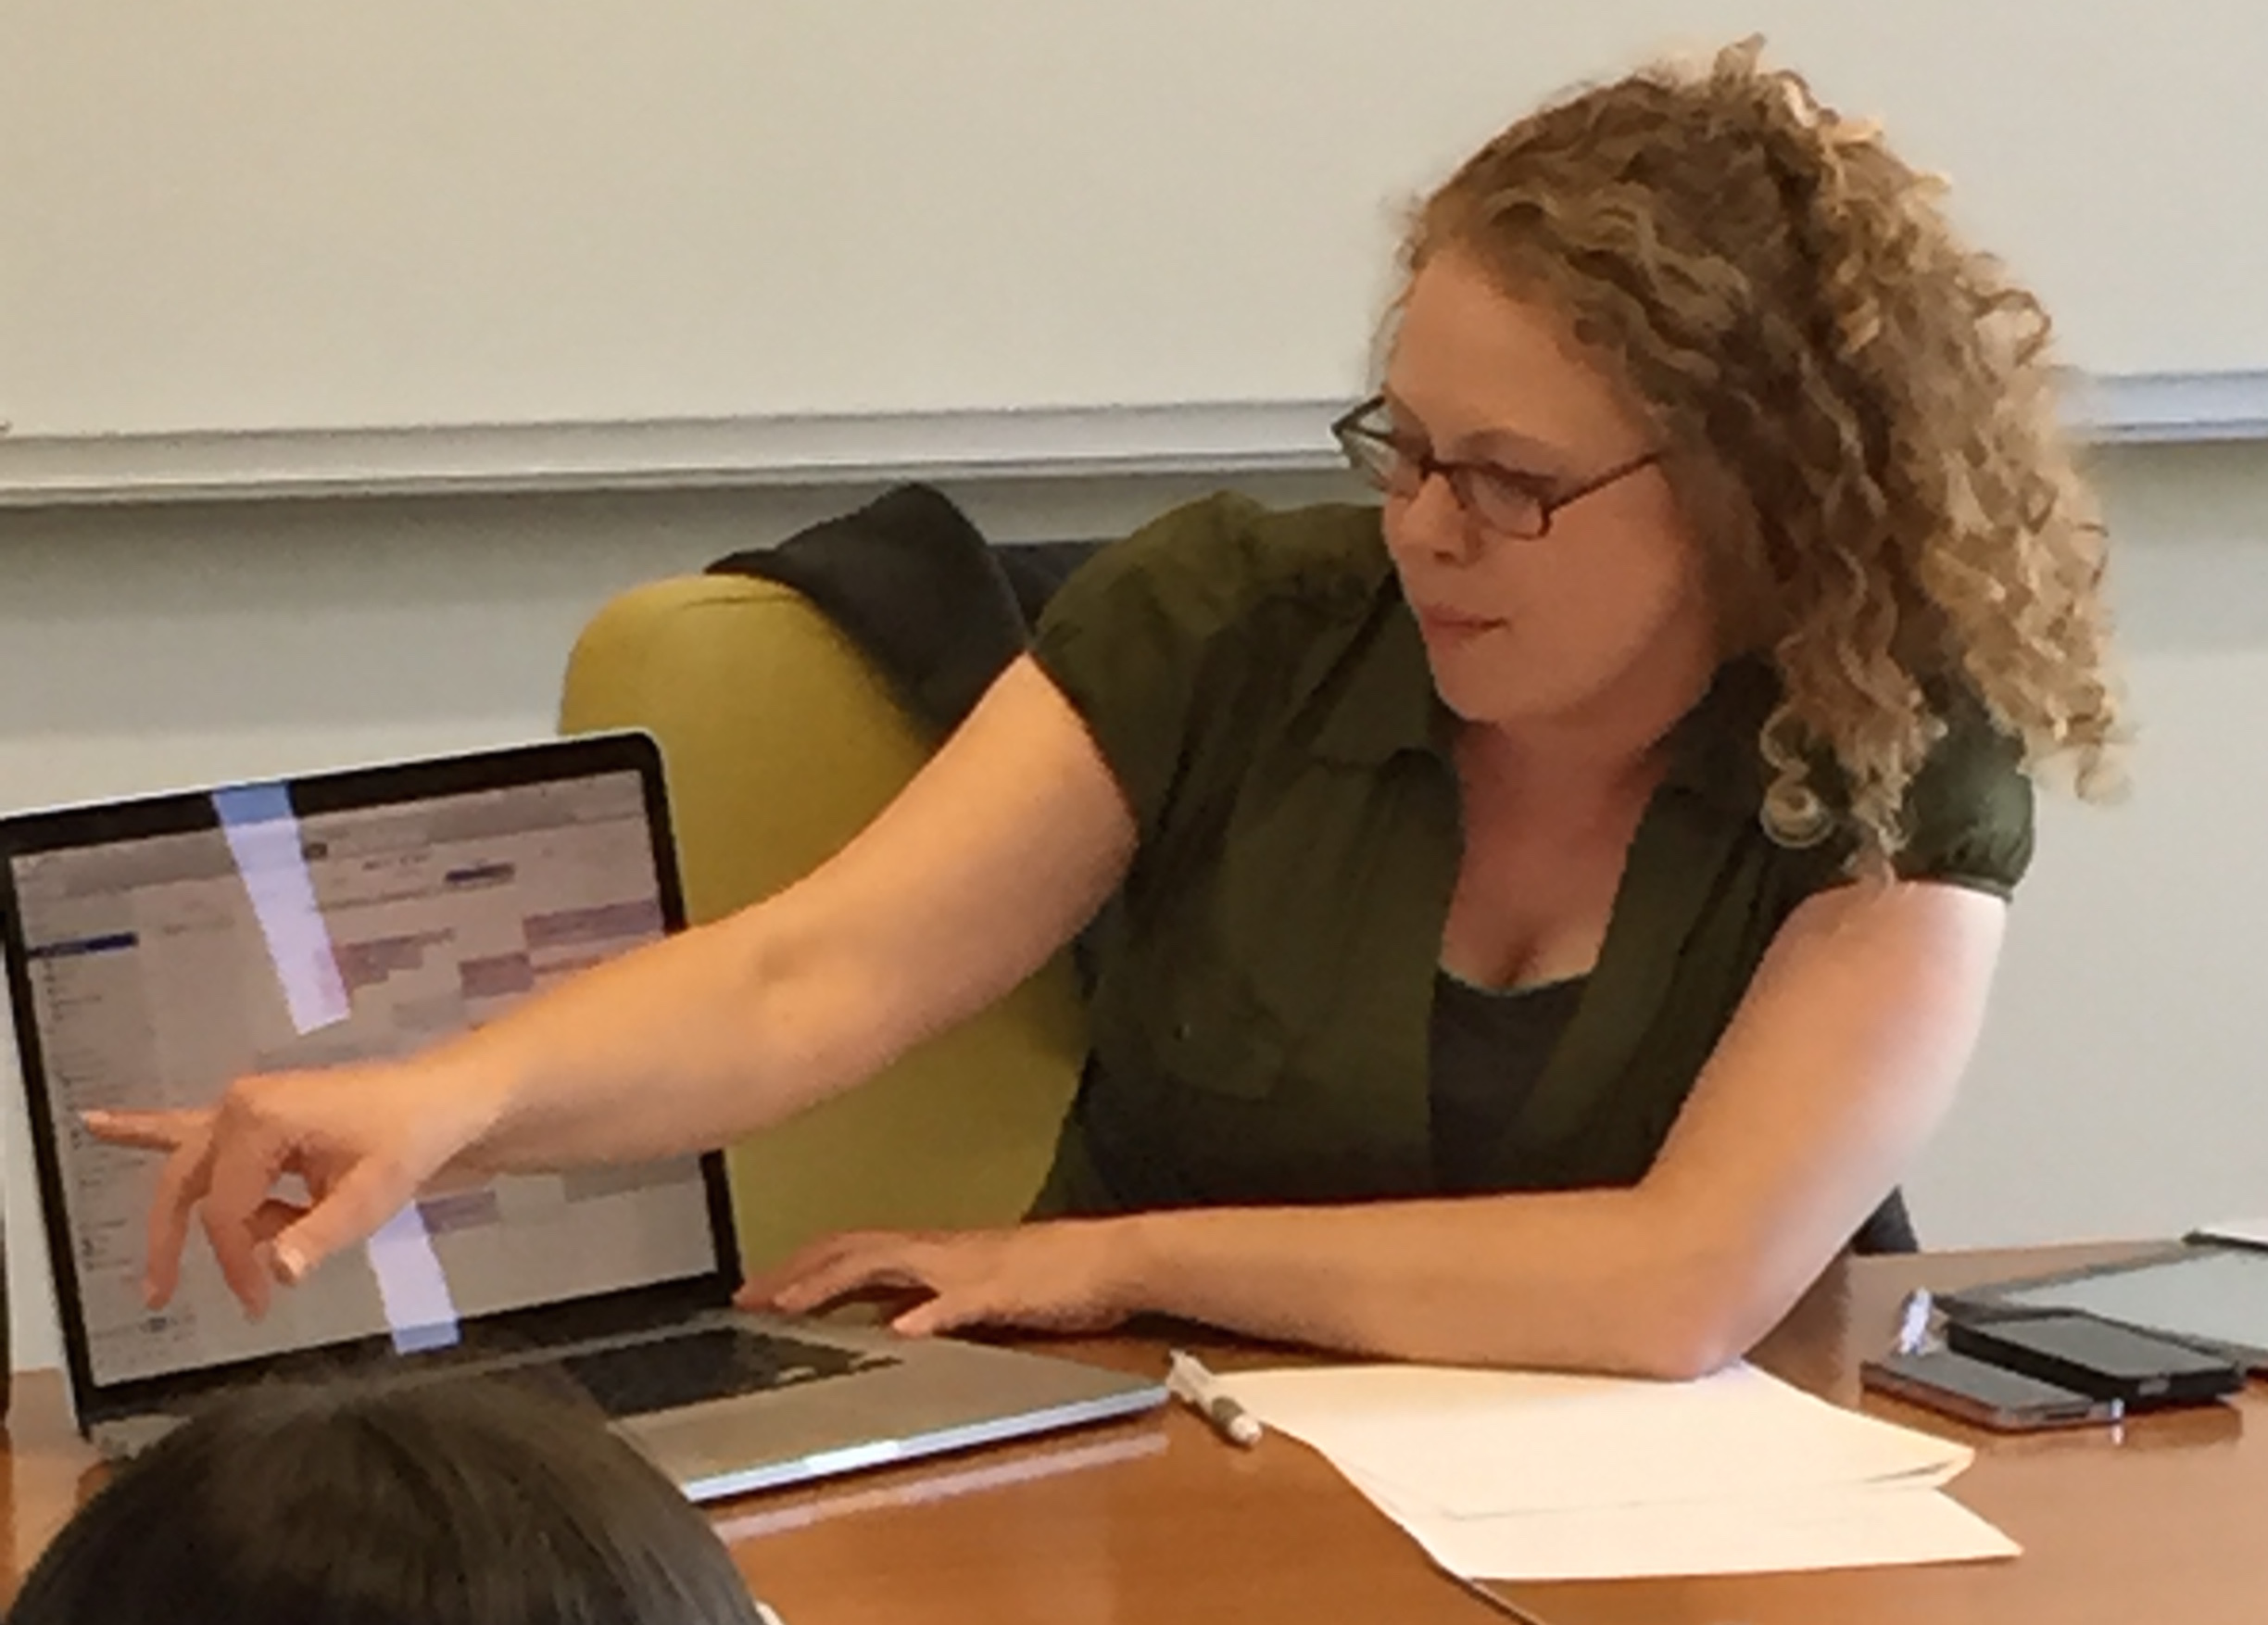 Brittany (Productivity coach) is presenting on task management and calendar management to an ADHD Coaching group. She is recommending apps to use on computers, iPhones, and iPads. She is pointing out calendars that might be useful to use.